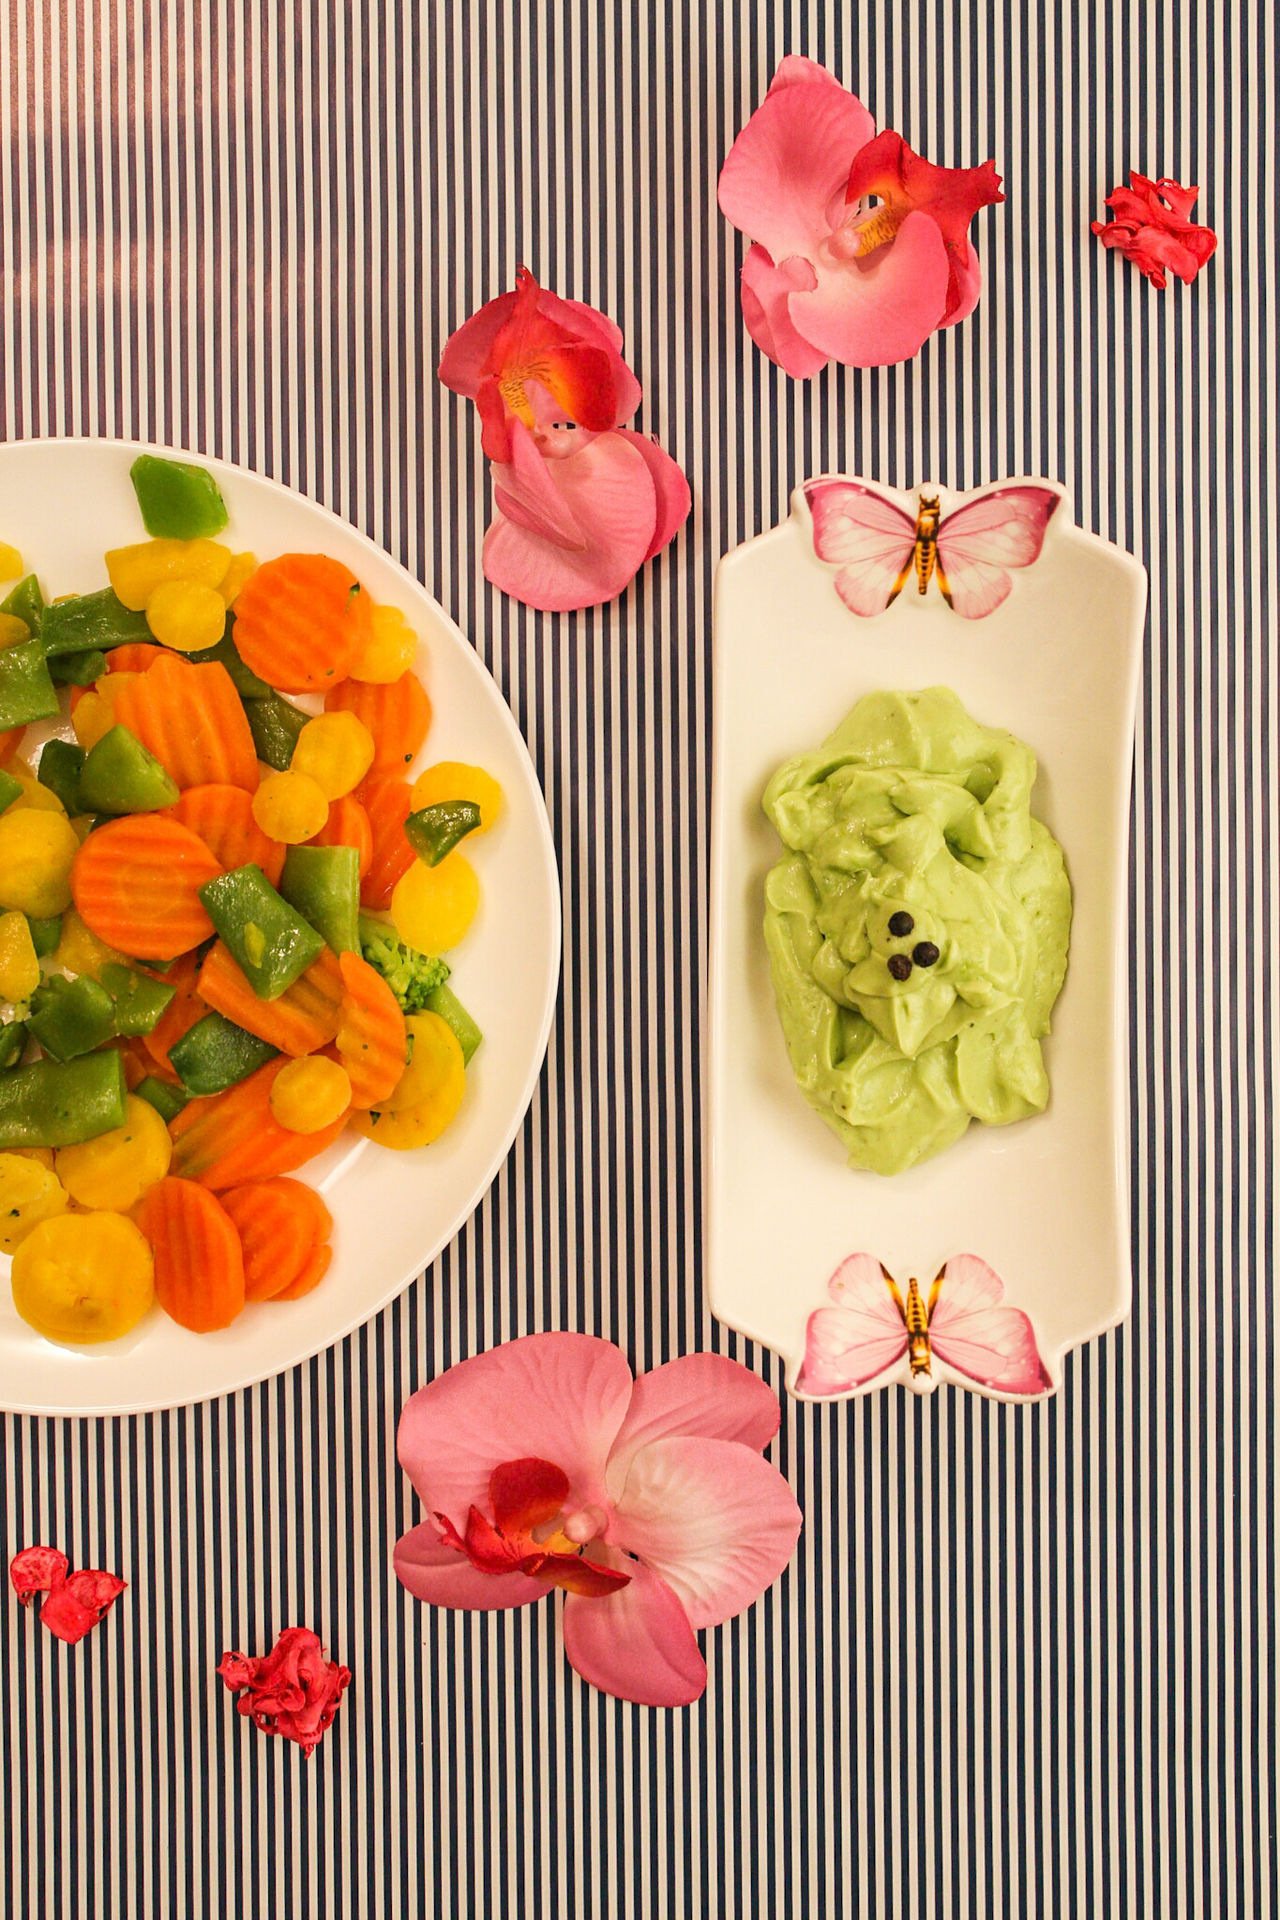 Exploring Style Healthy Eating Food Food And Drink Freshness Ready-to-eat Vegetables Guacamole Guacamoledip Serving With Style Minimalism Flowers On The Table Orchid Flower Pink Flowers